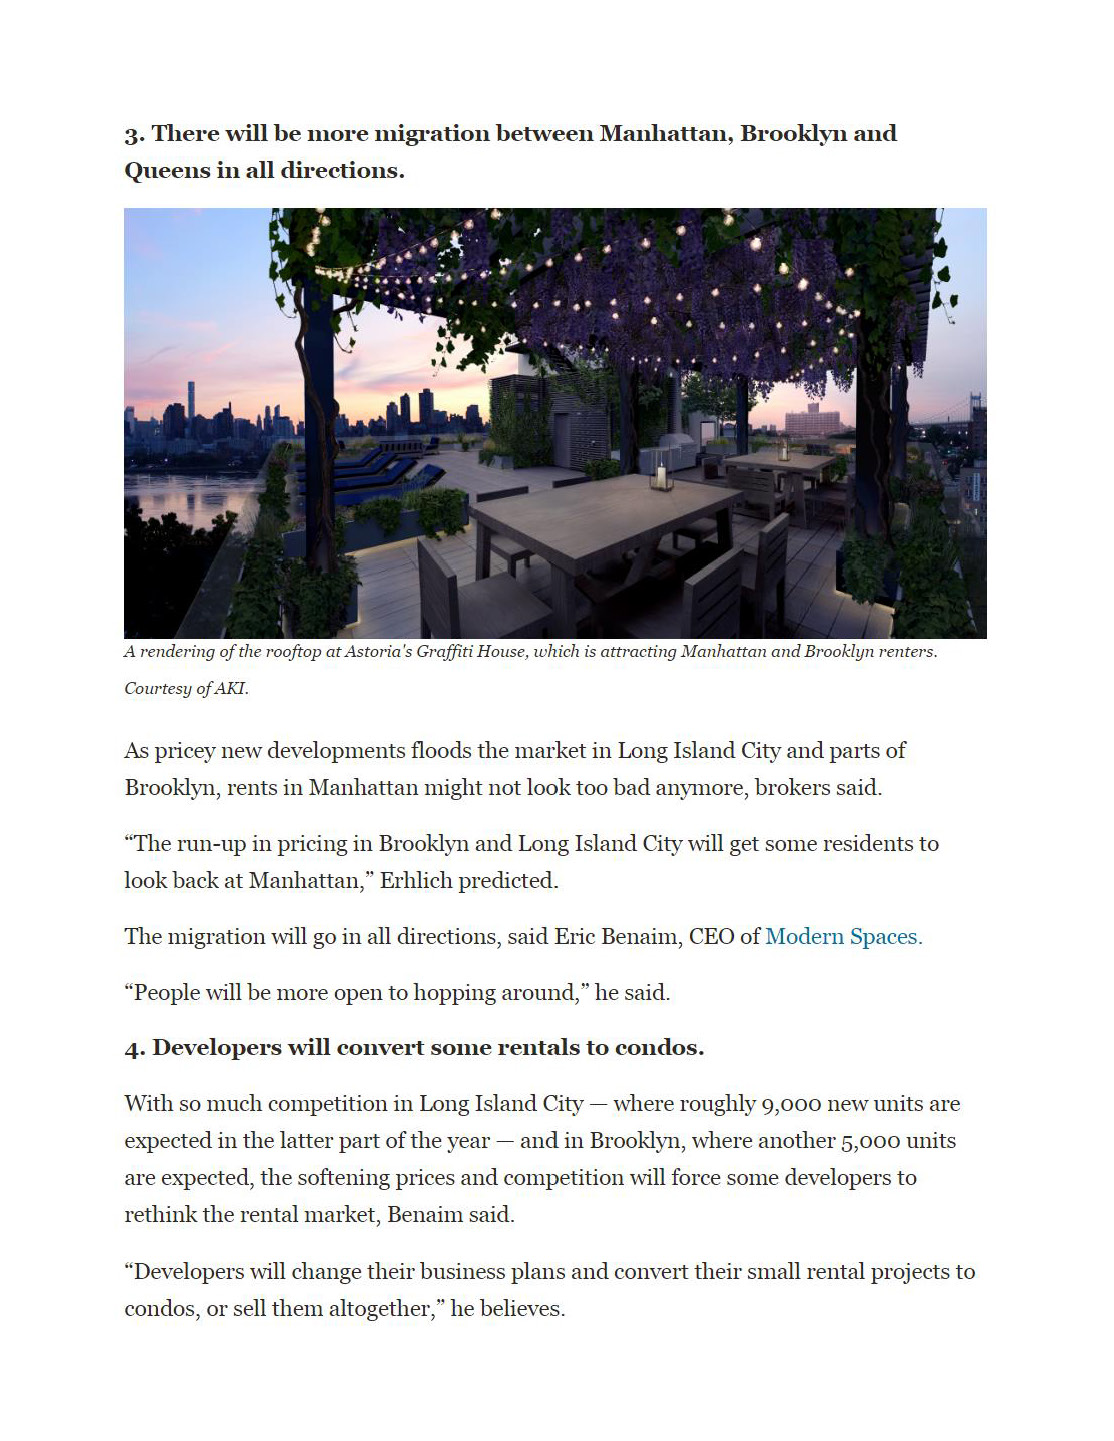 dnainfo-17-predictions-for-nycs-residential-real-estate-in-2017-12-20-1_page_3